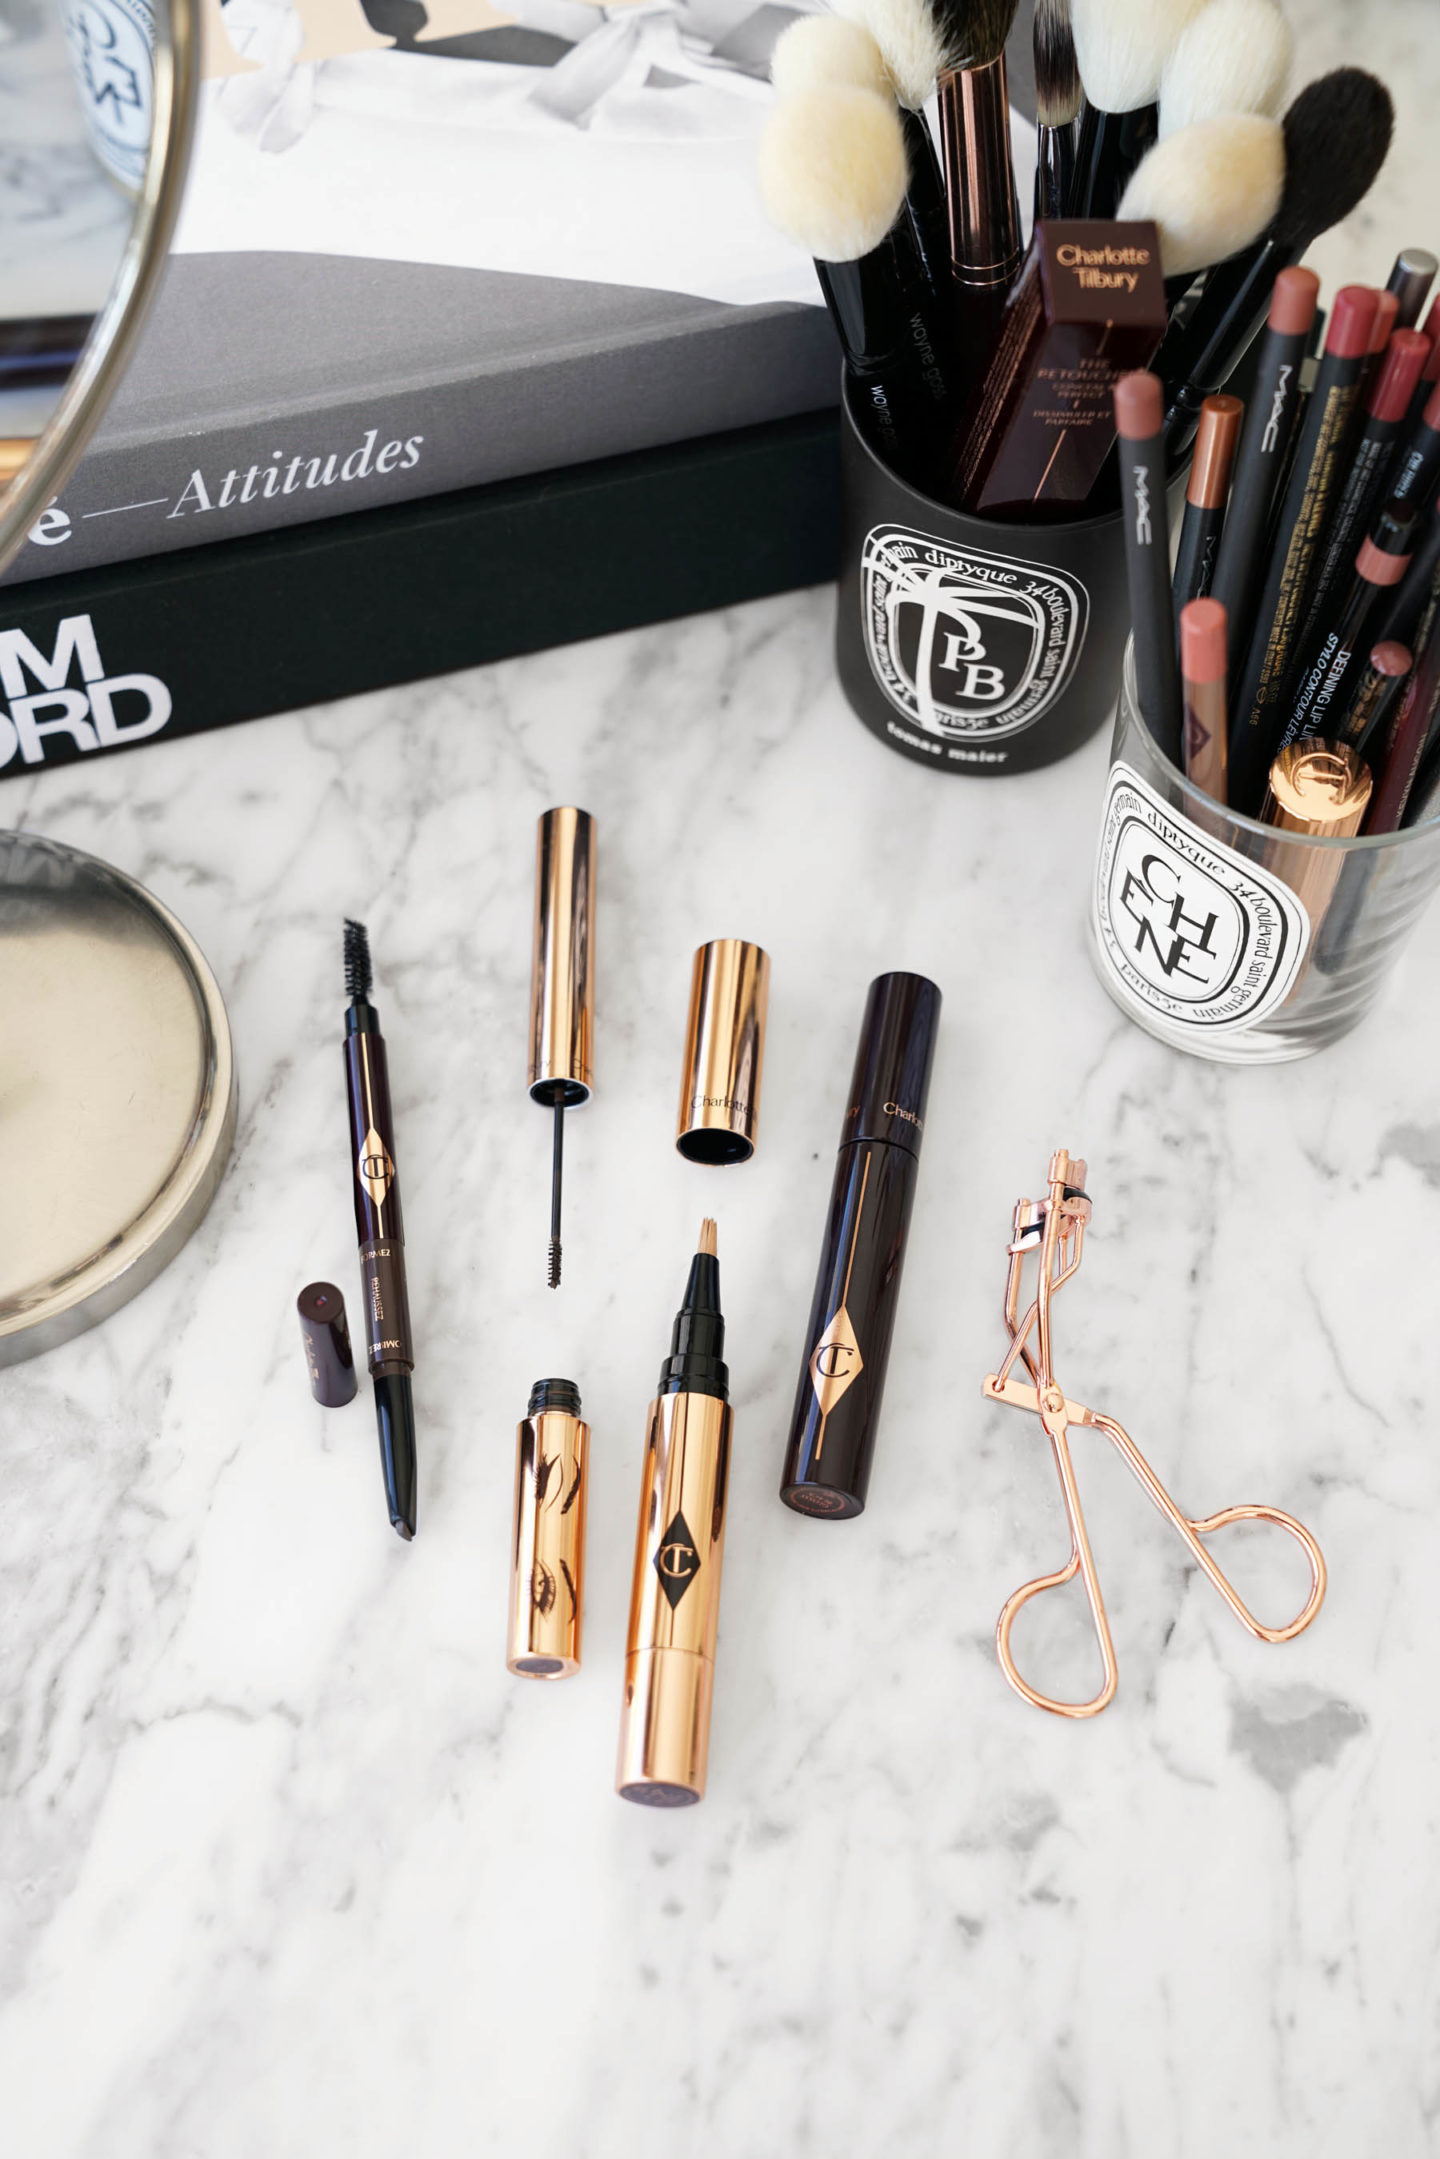 Charlotte Tilbury The Supermodel Brow Lift Kit Review